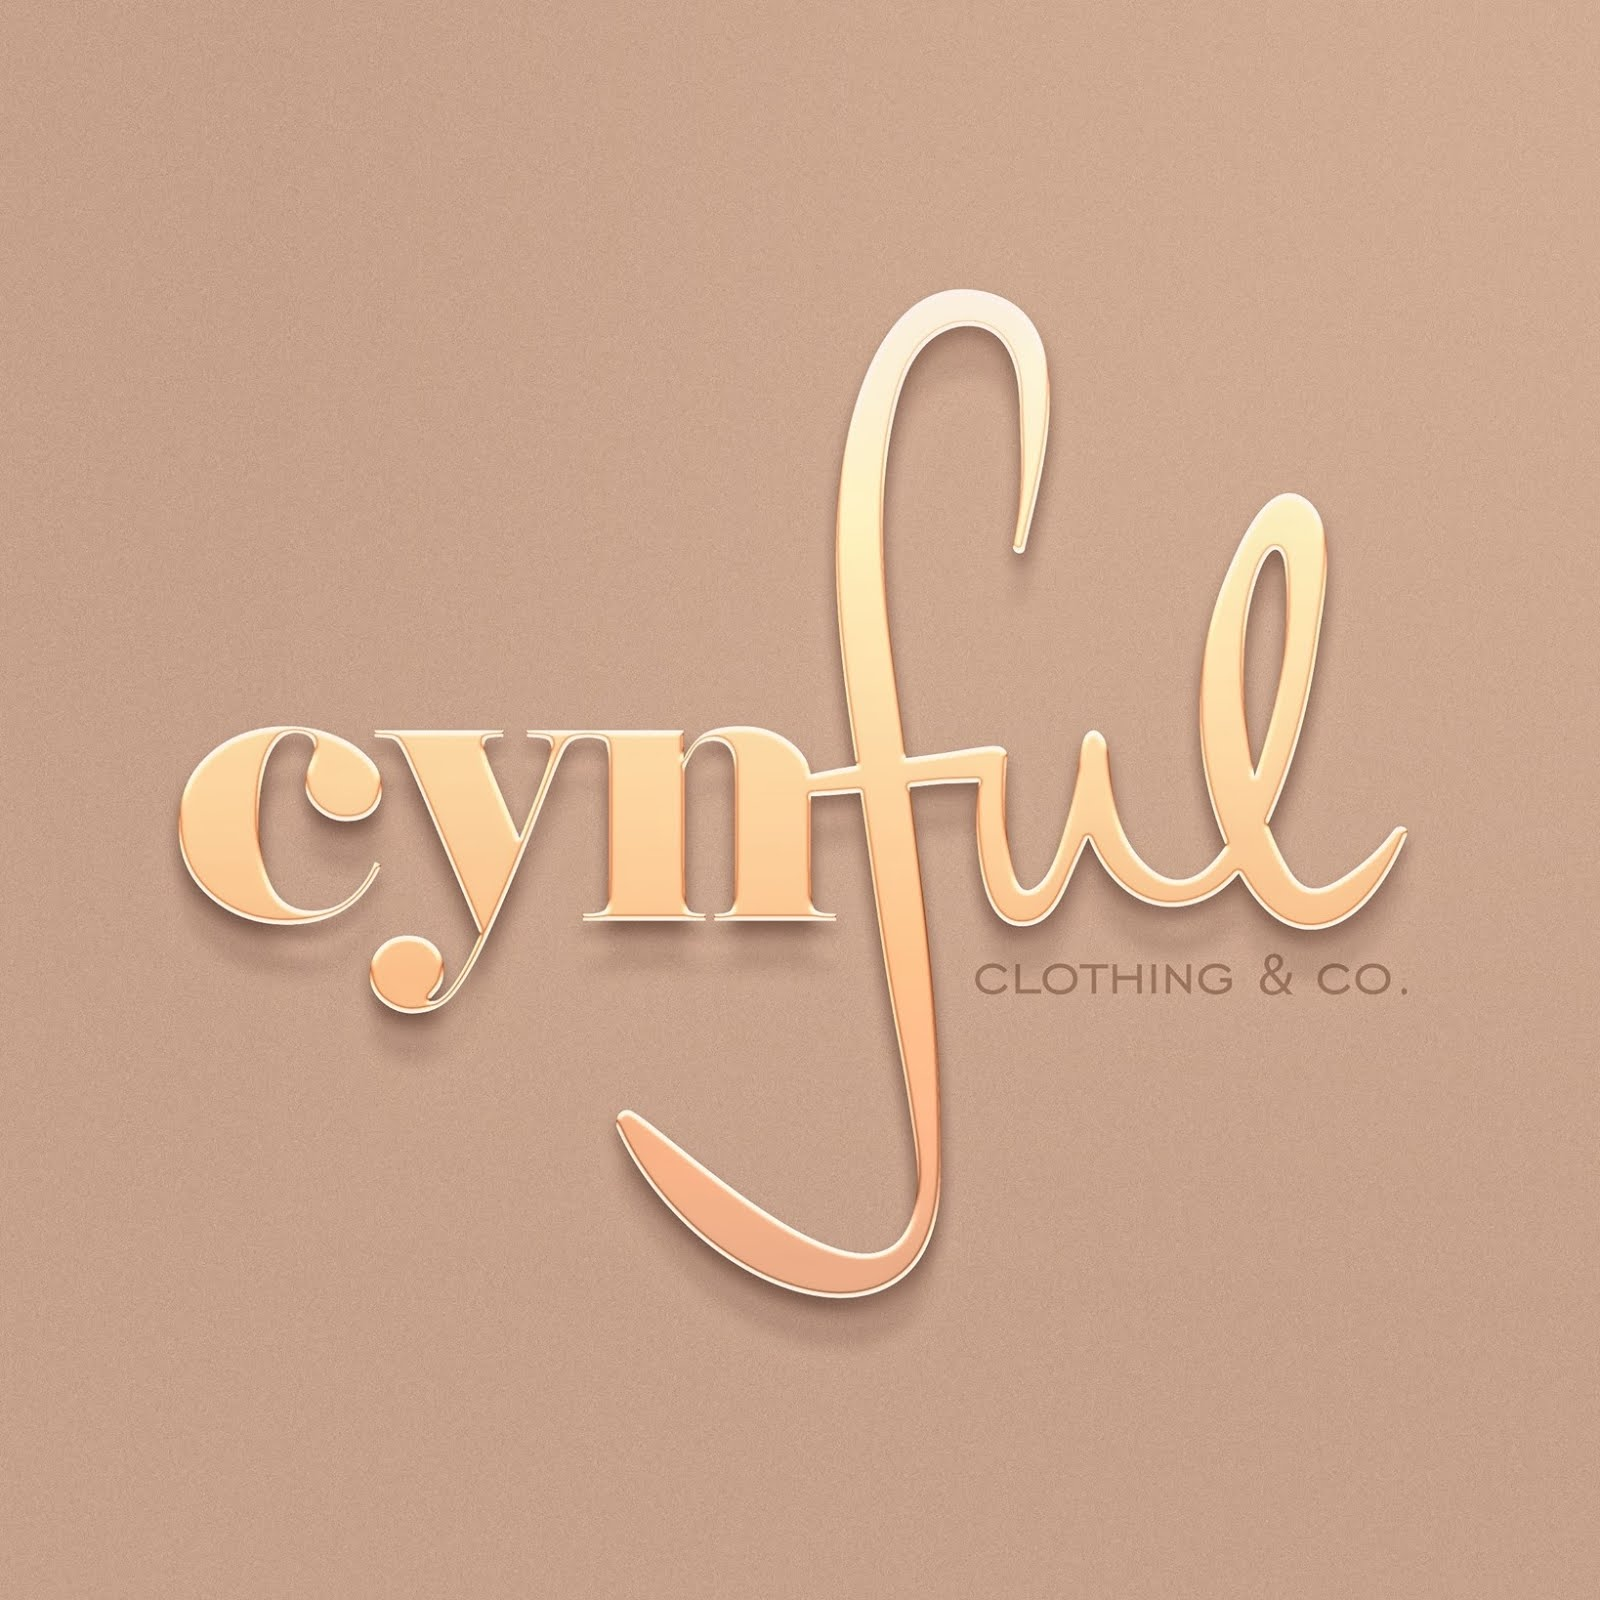 [Cynful] Clothing Co.